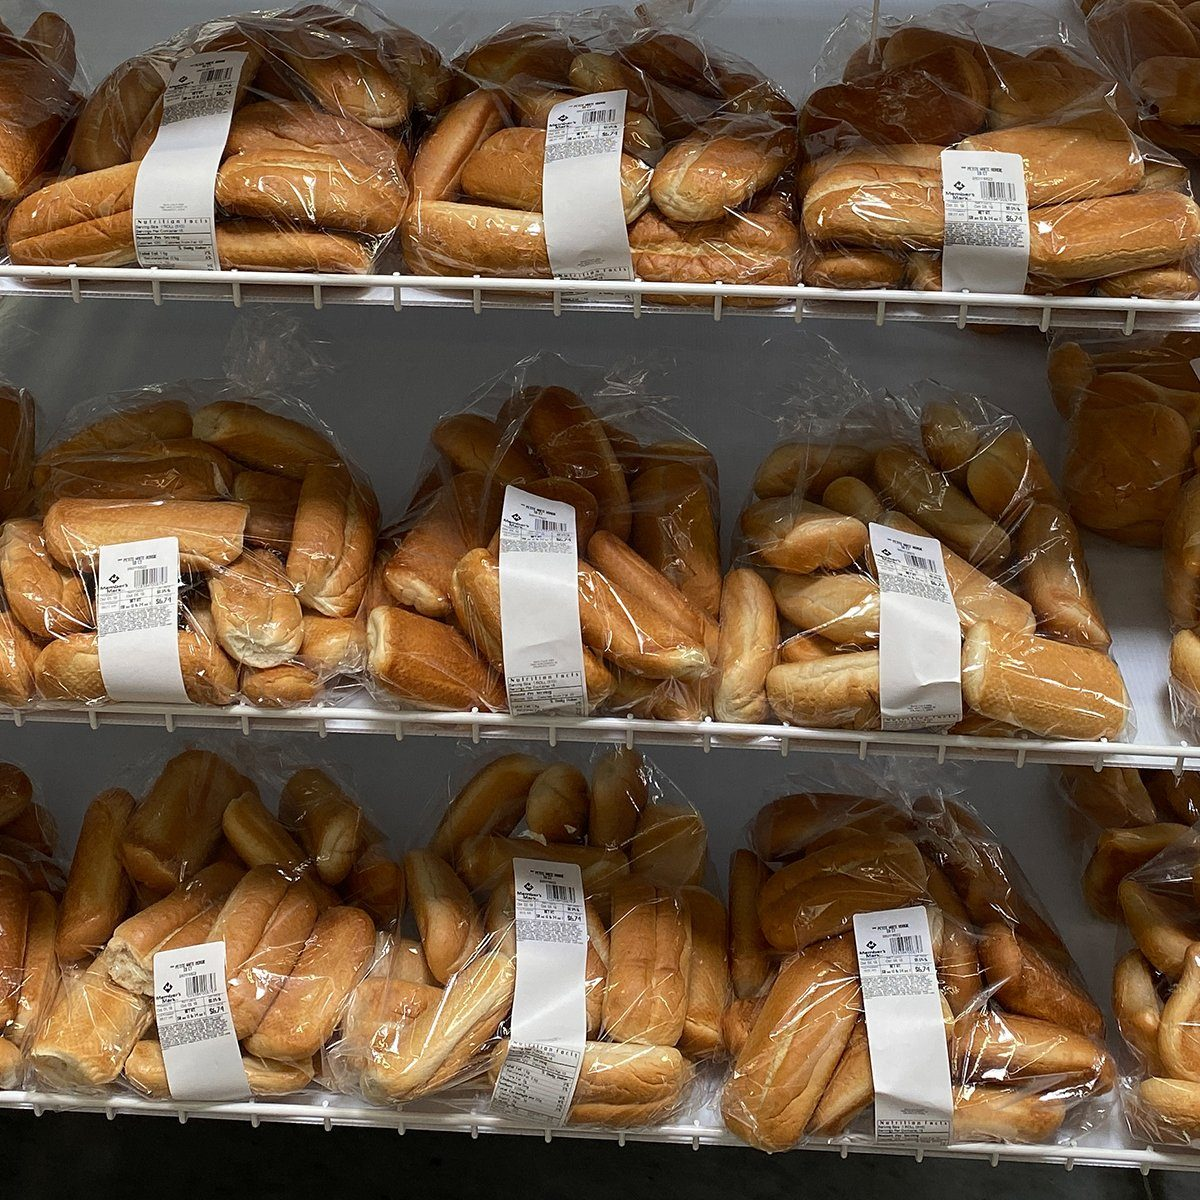 Orlando,FL/USA -10/4/19: Bread, rolls, and buns on the baked goods aisle of a Sams Club grocery store with fresh breads ready to be purchased by consumers.; Shutterstock ID 1522390964; Job (TFH, TOH, RD, BNB, CWM, CM): TOH